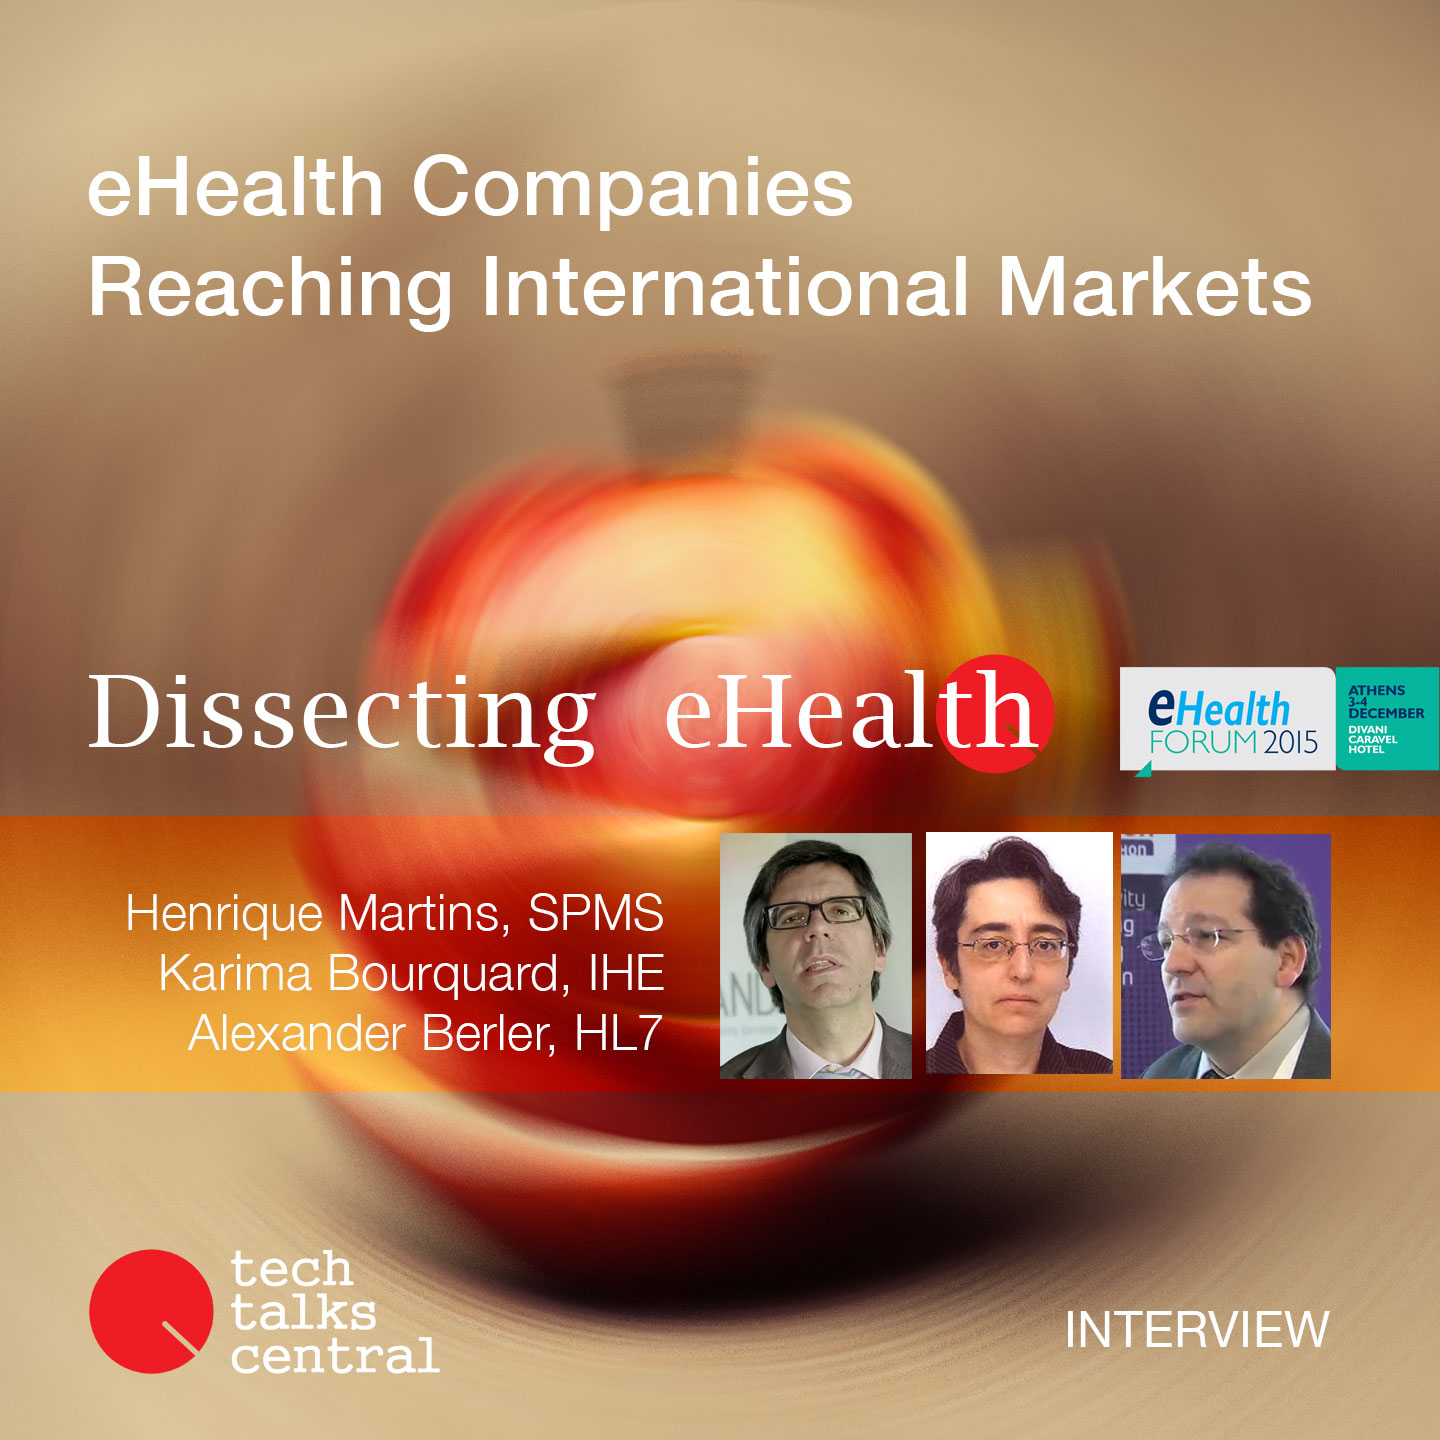 eHealth Companies Reaching International Markets